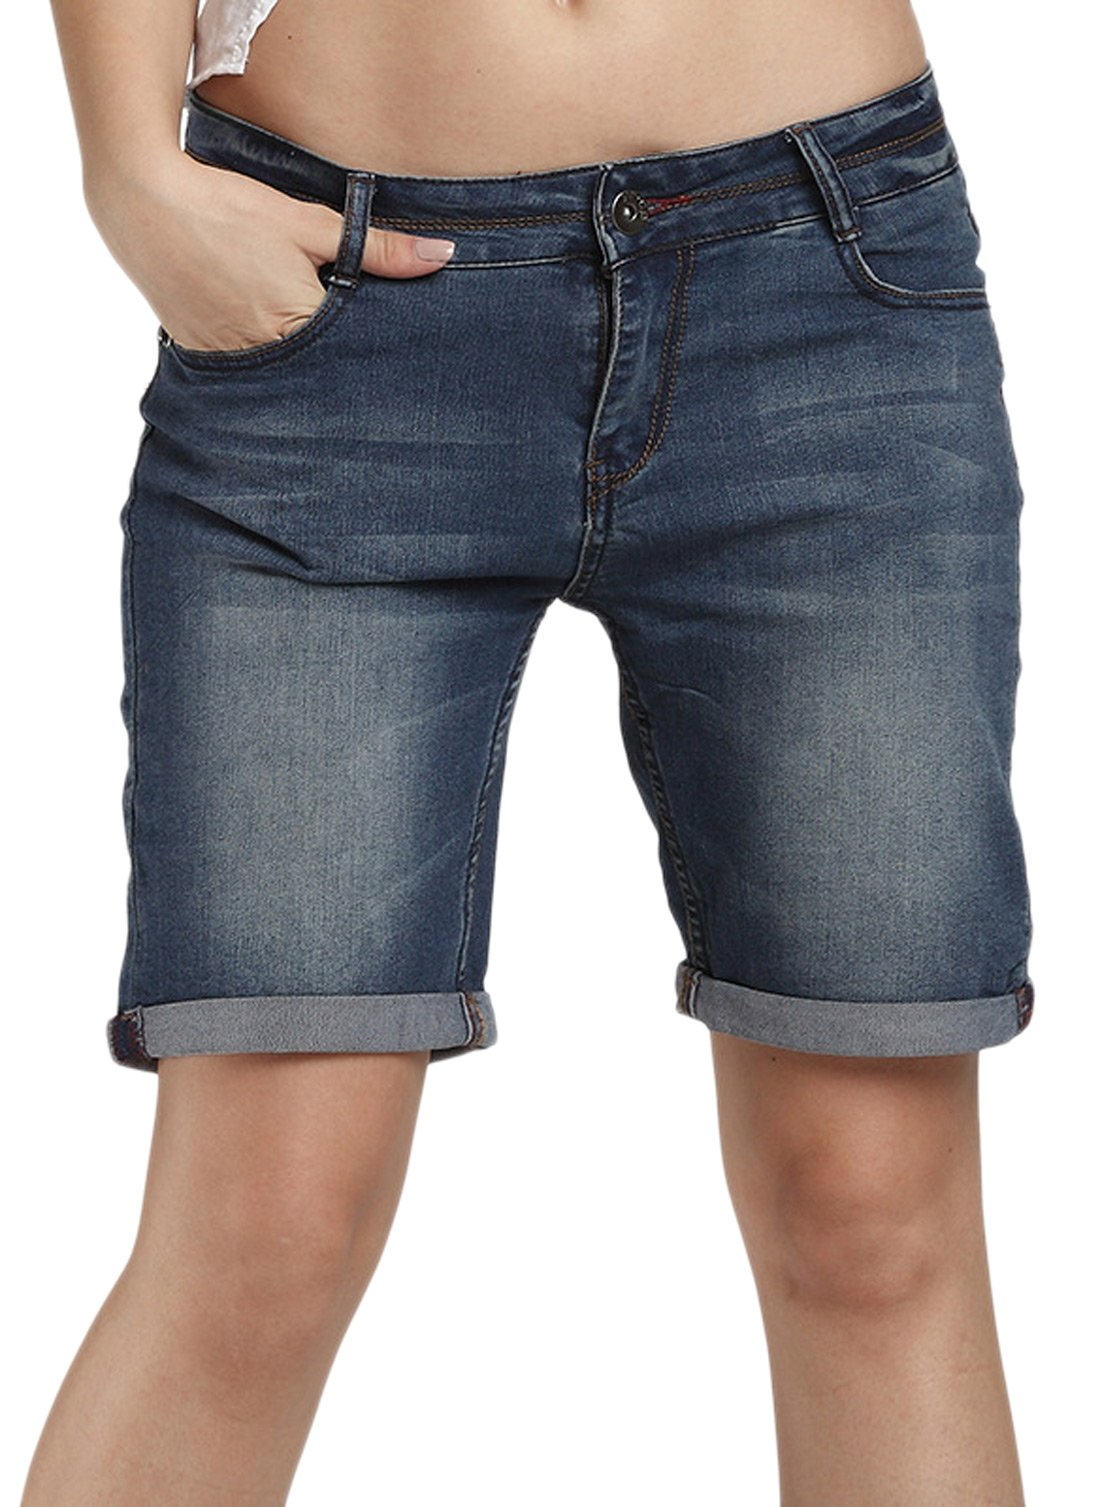 Chouyatou Women's Casual Perfectly-Shaping Stretch Denim Bermuda Shorts (Large, Blue)